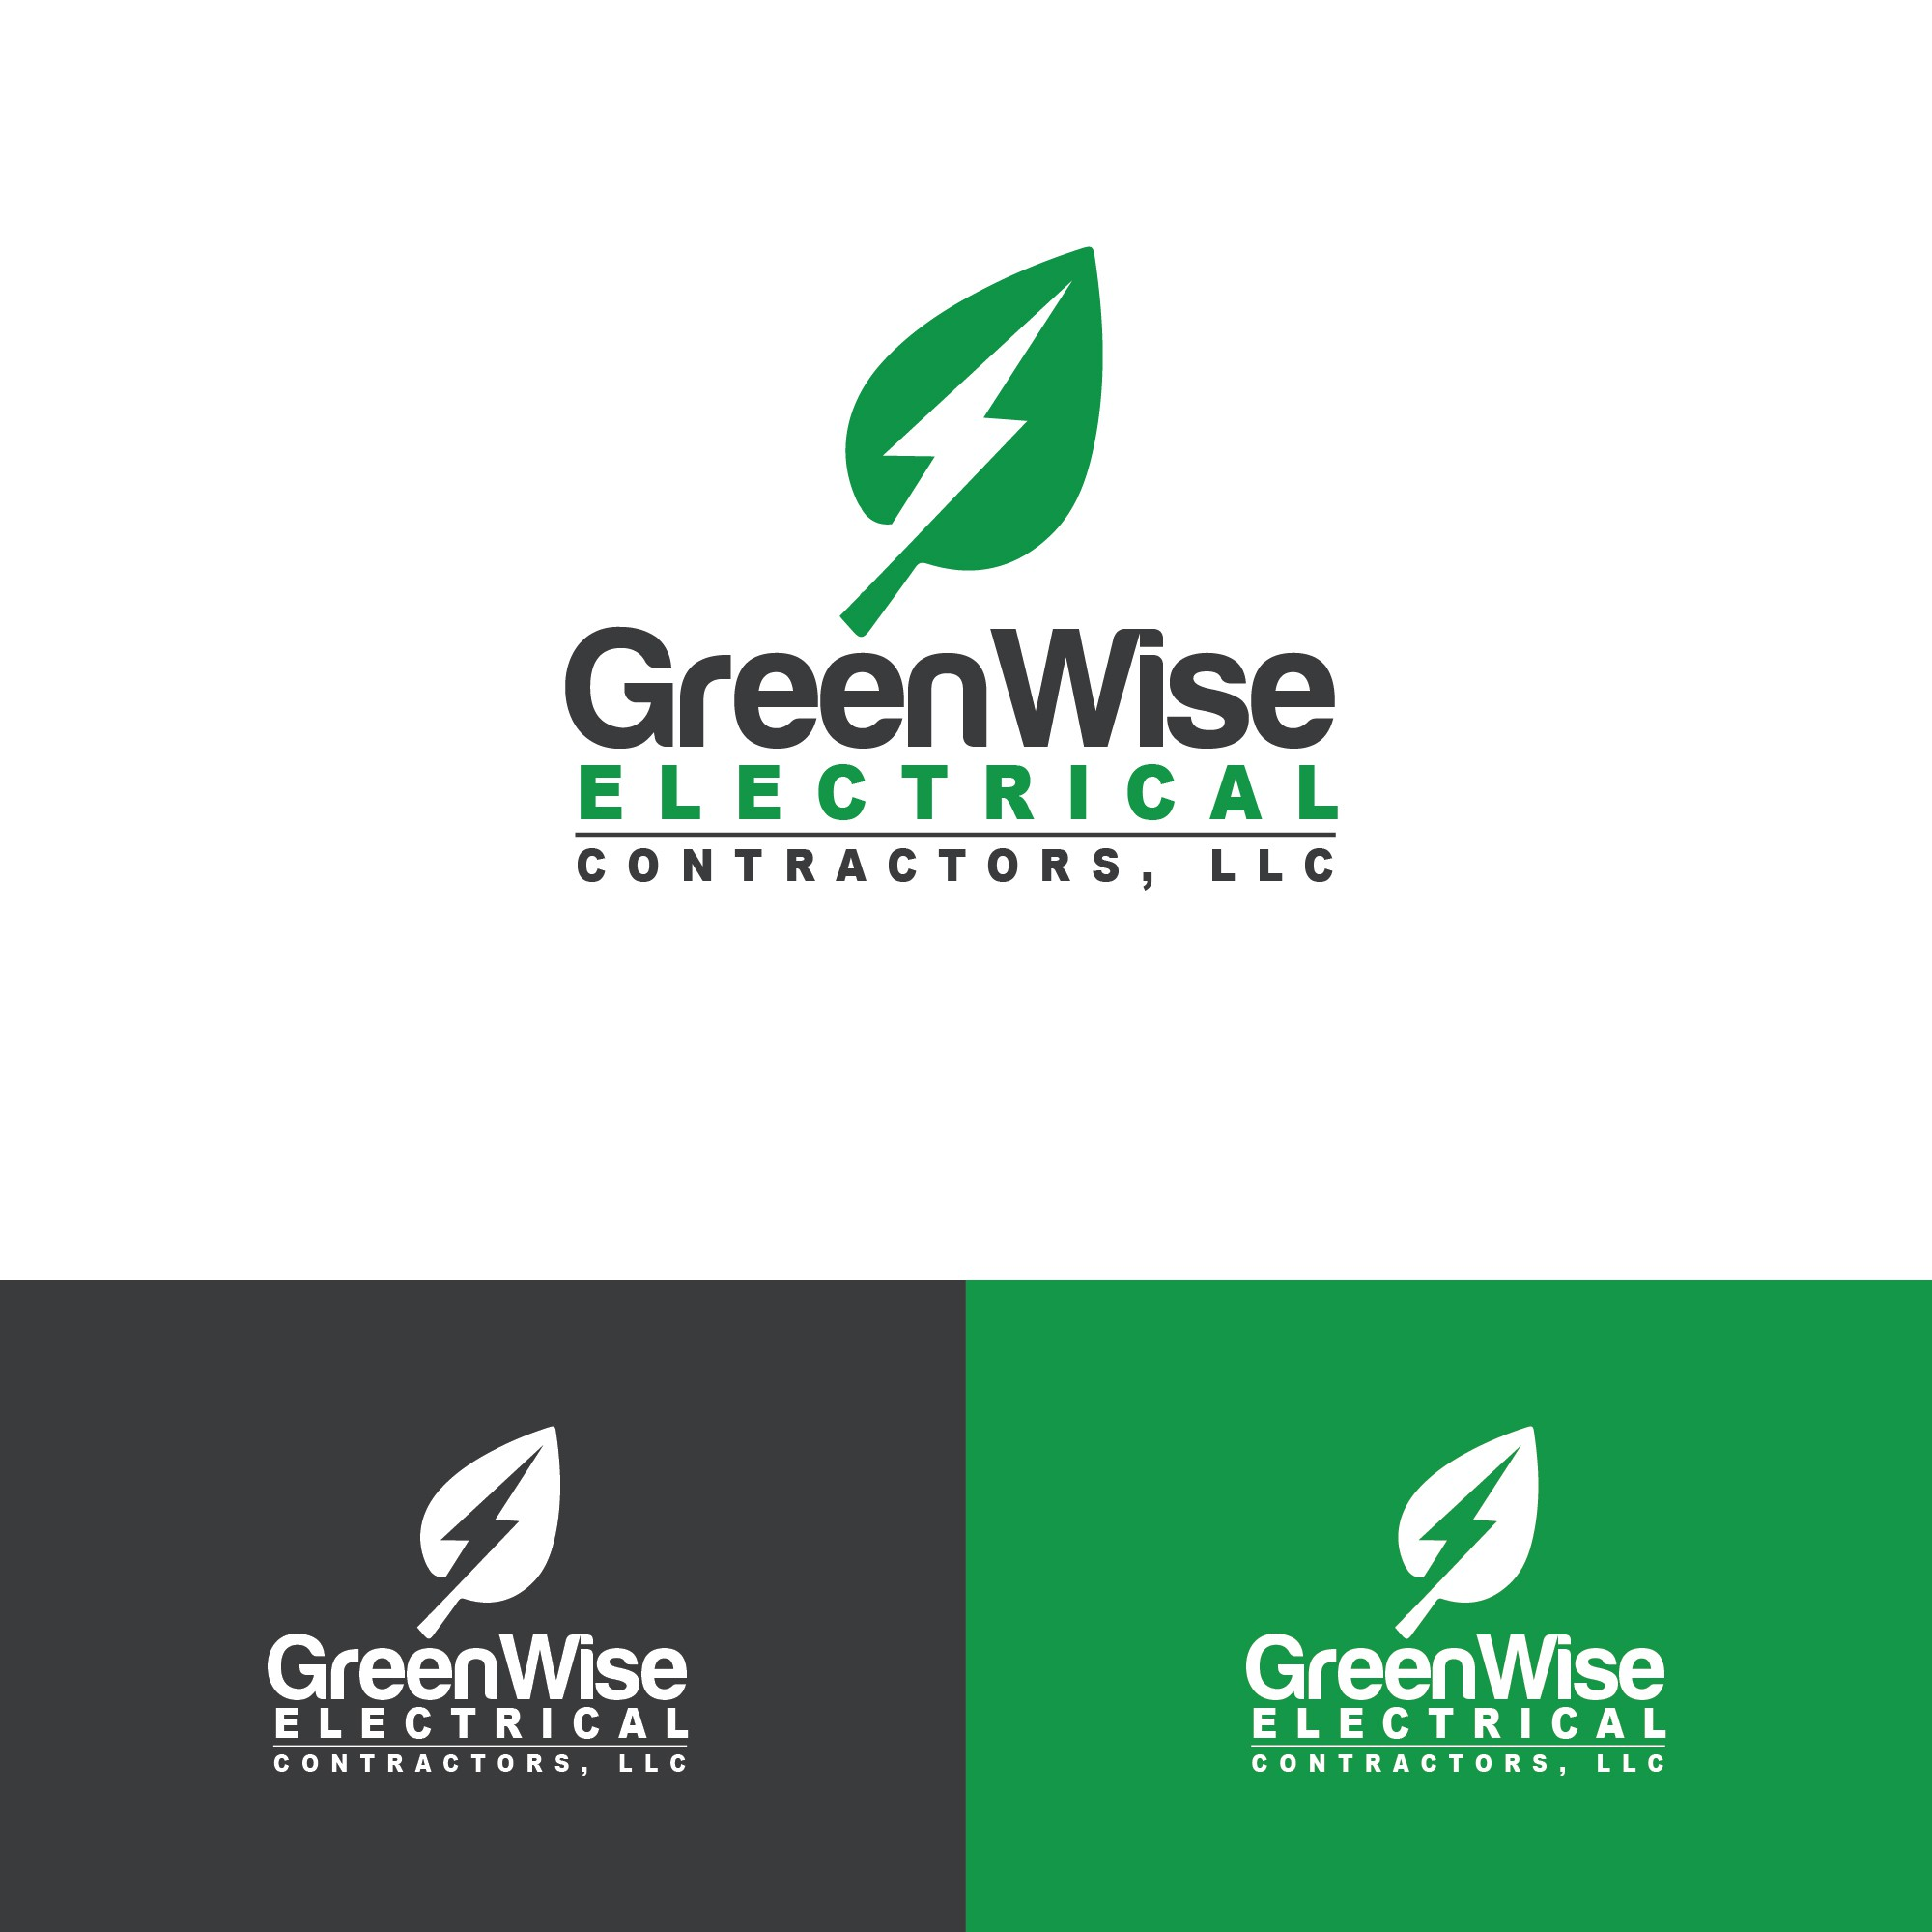 Electrical Contractor for logo upgrade